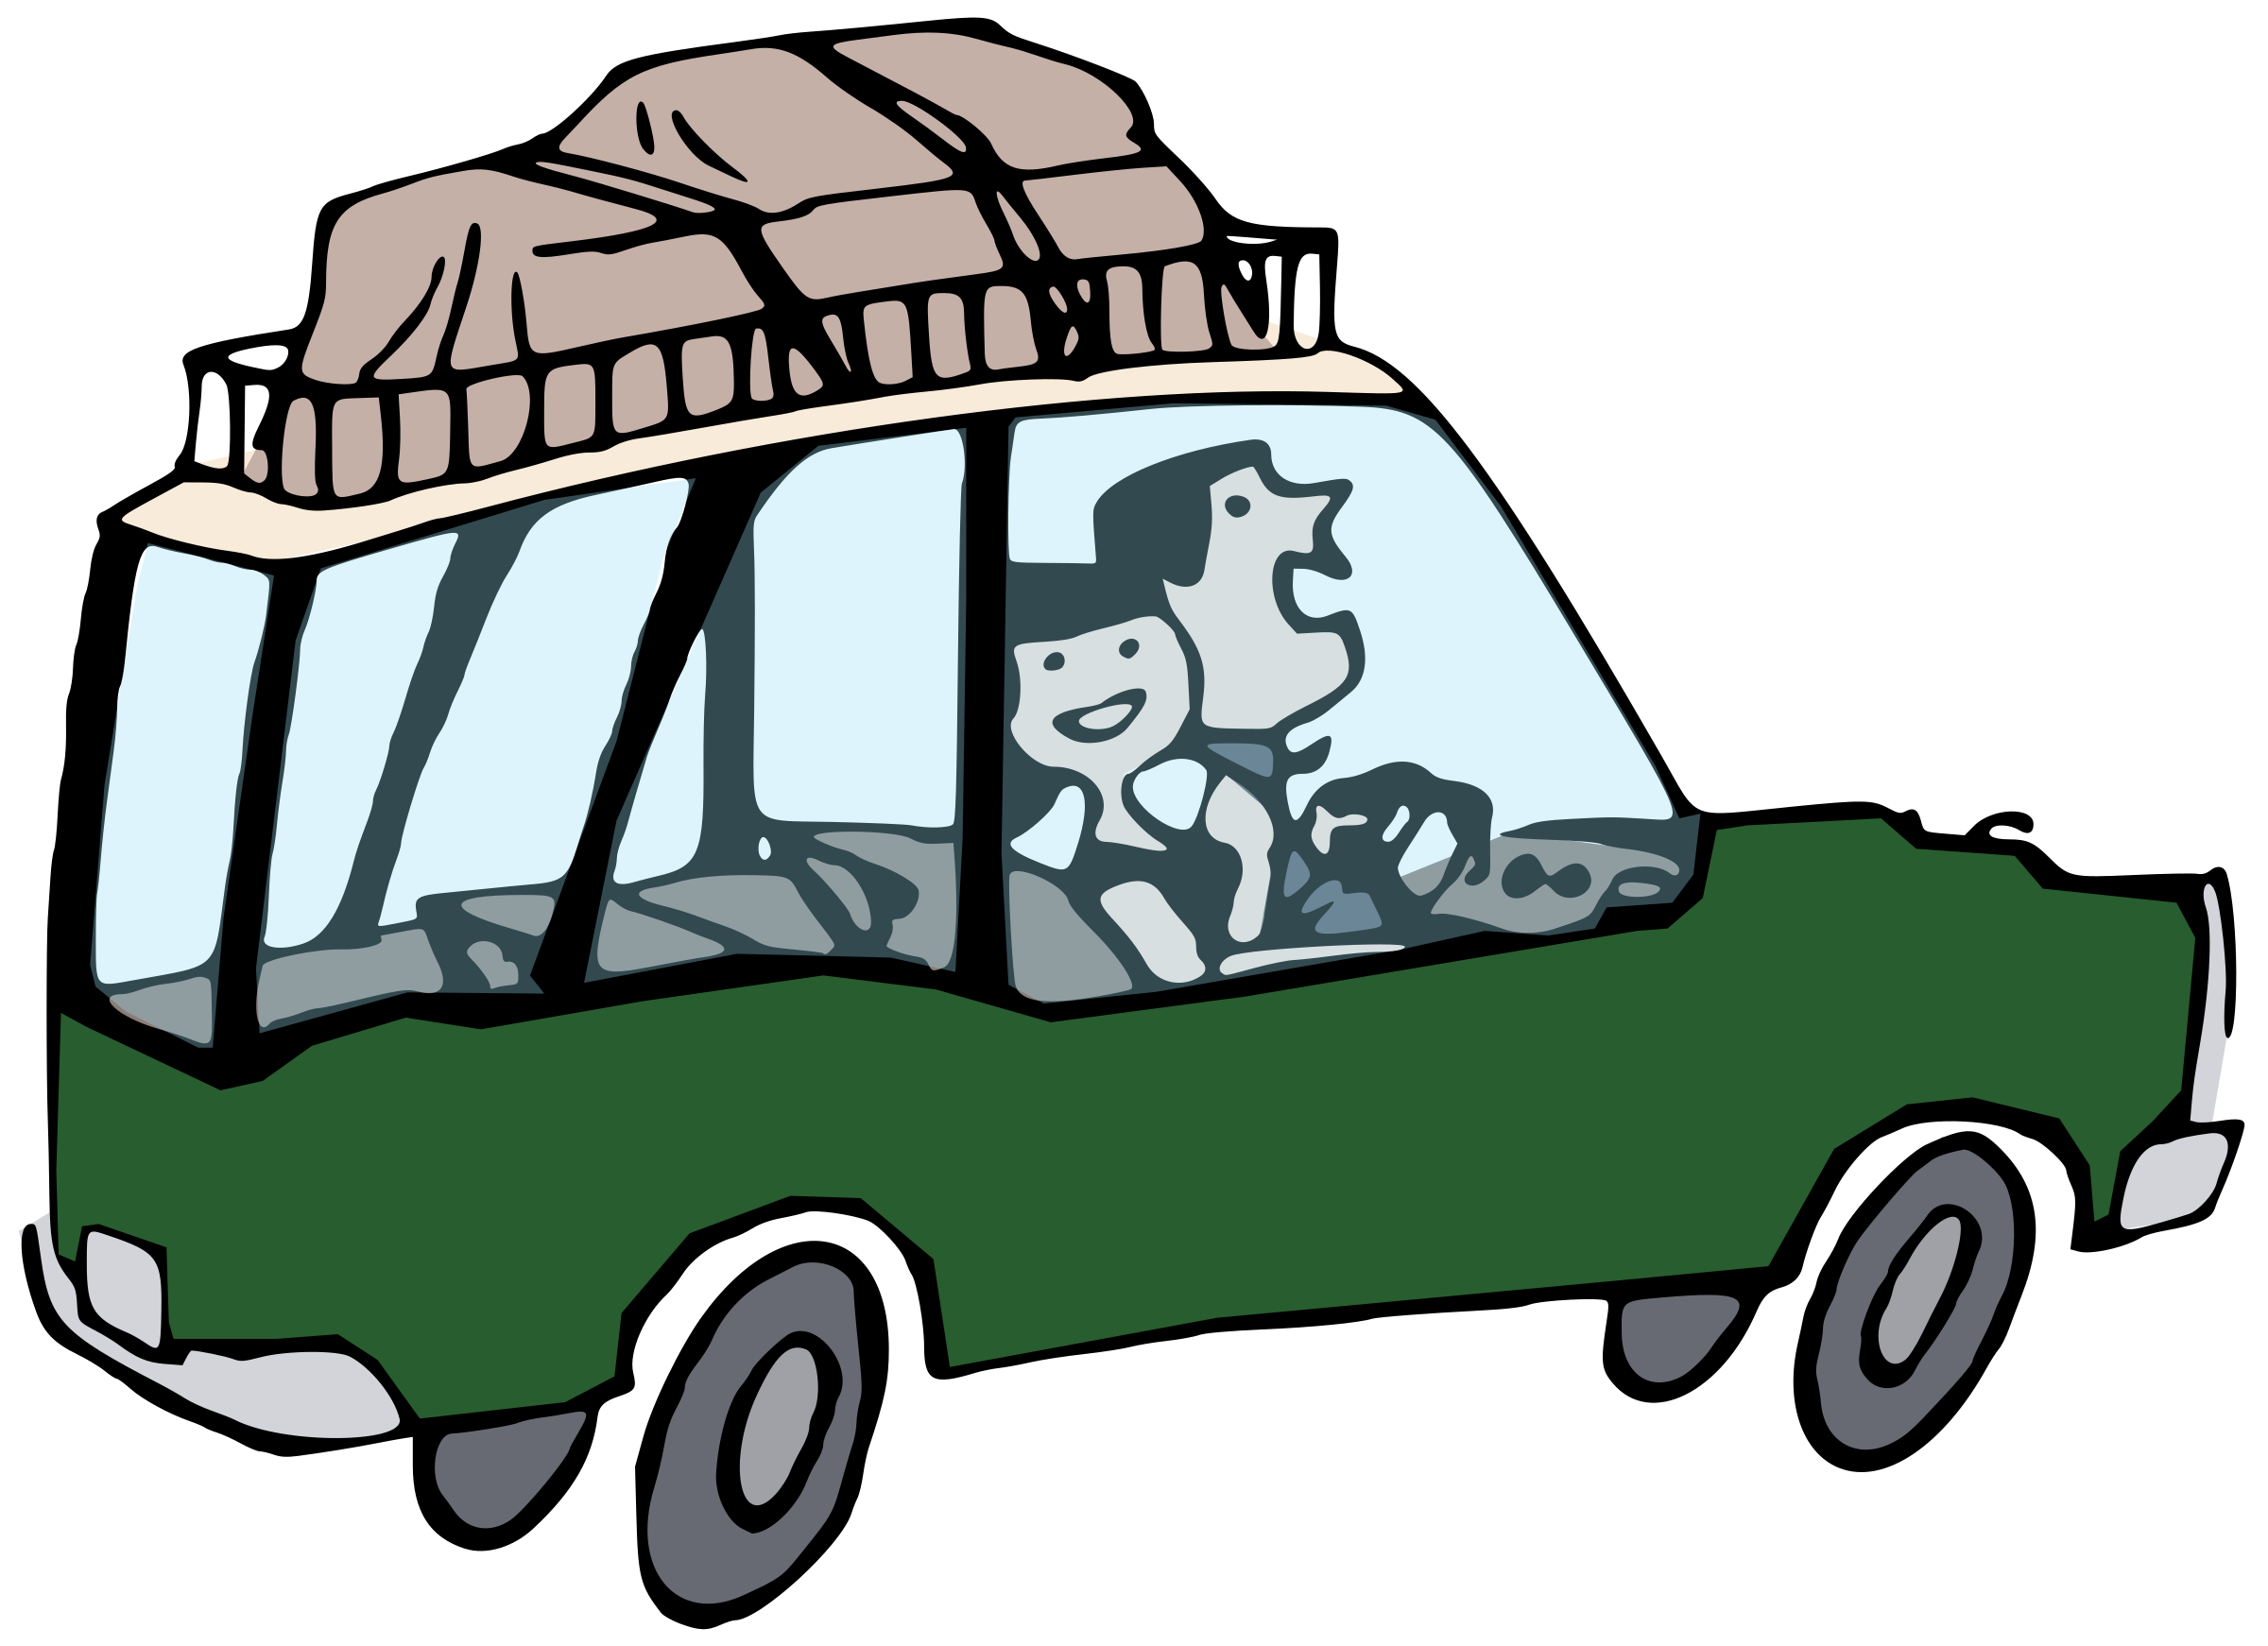 Road trip car clipart clipart royalty free library Clipart - Going On Holiday - Colour clipart royalty free library